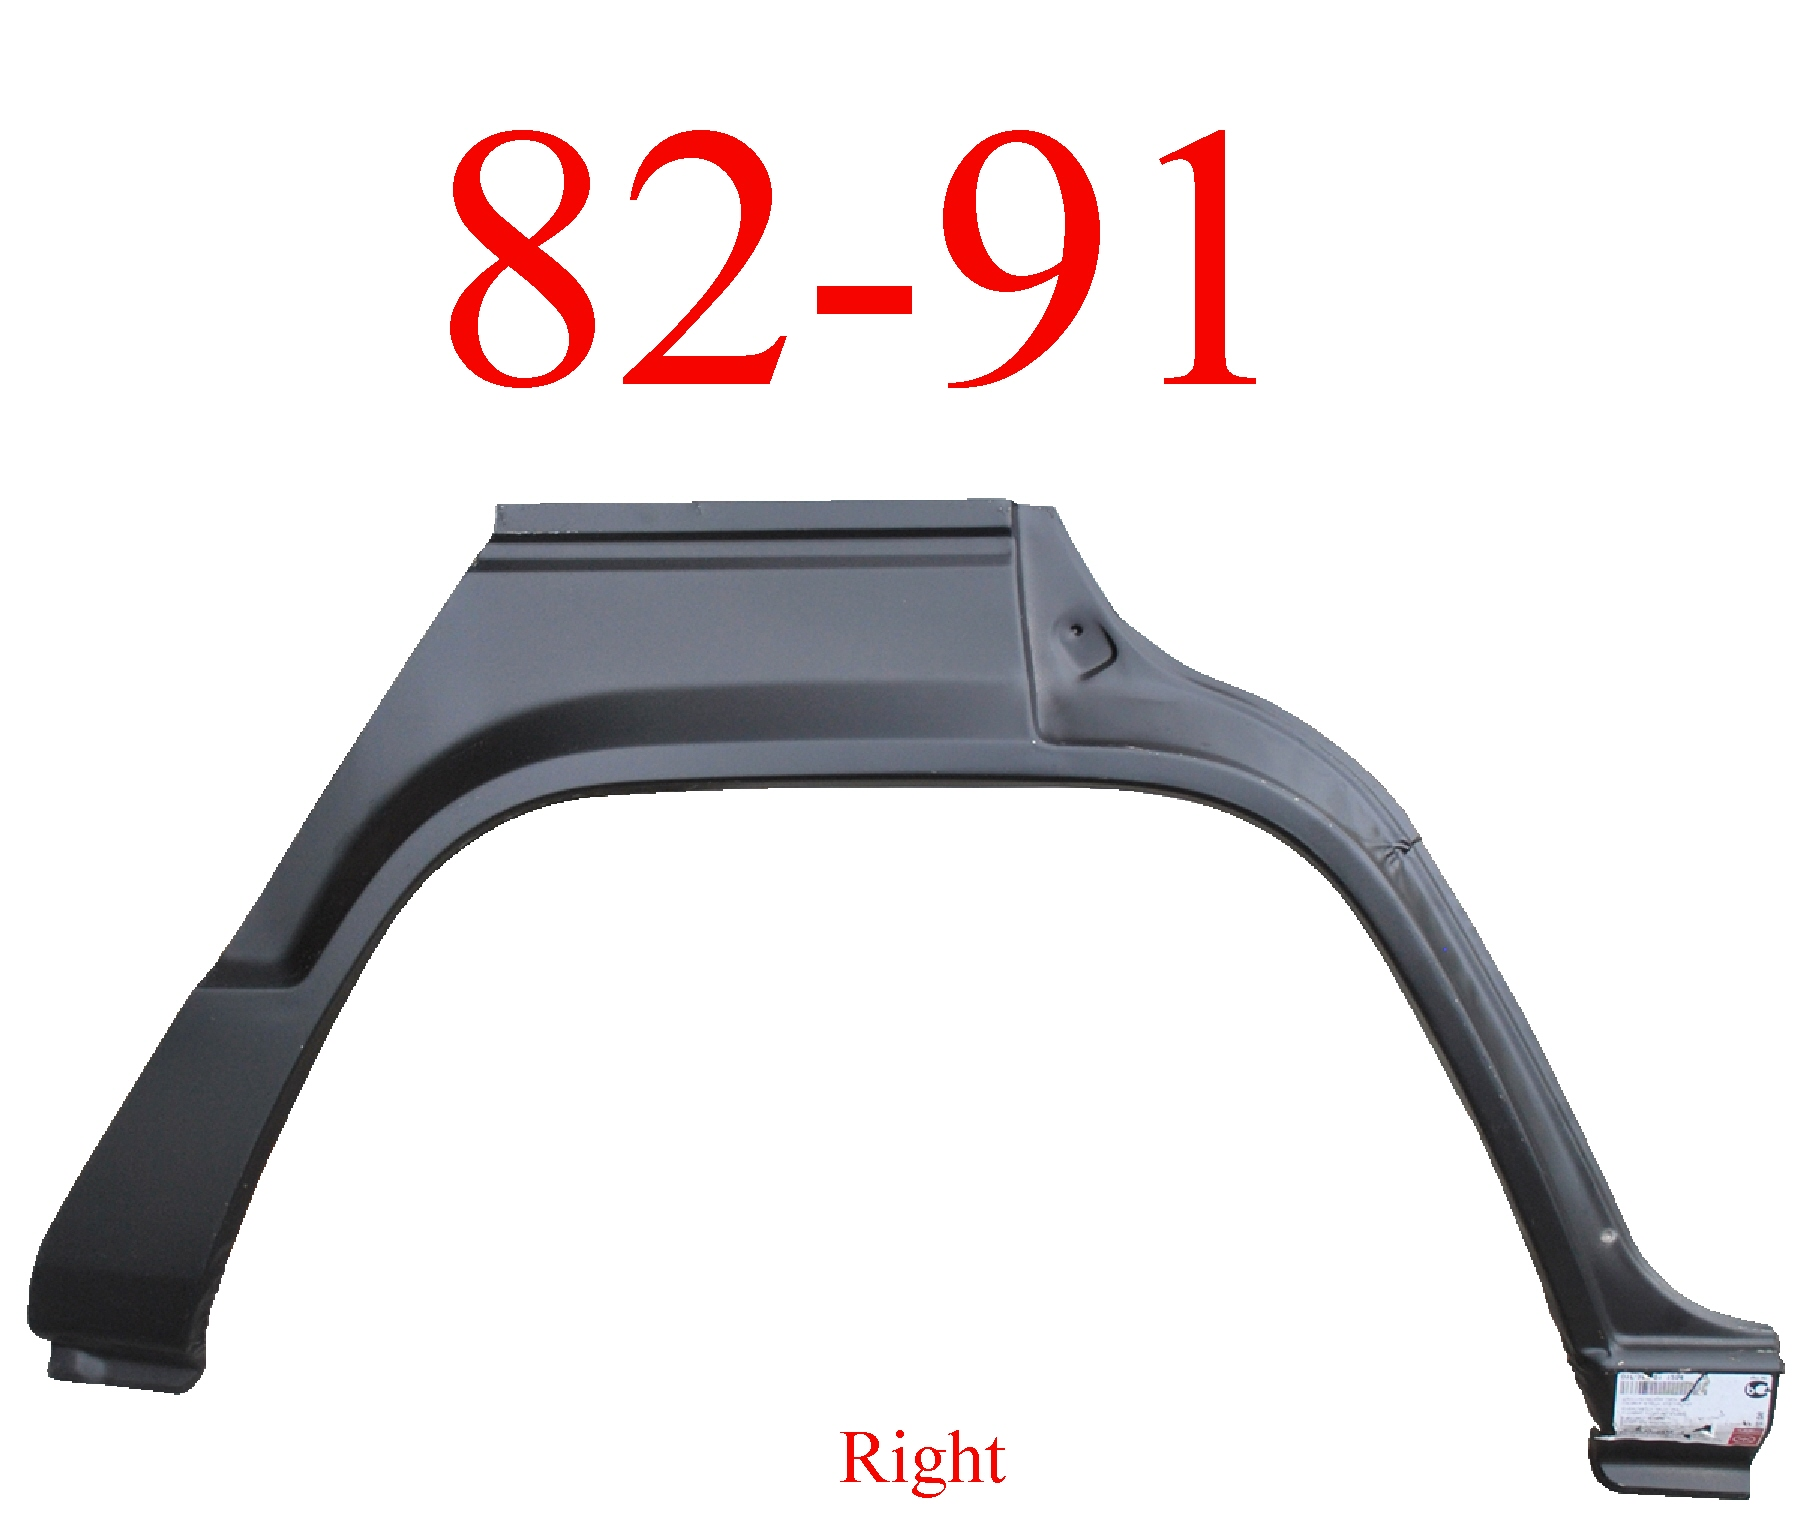 82-91 Mitsubishi Montero 4Dr Right Rear Upper Arch & Dog Leg